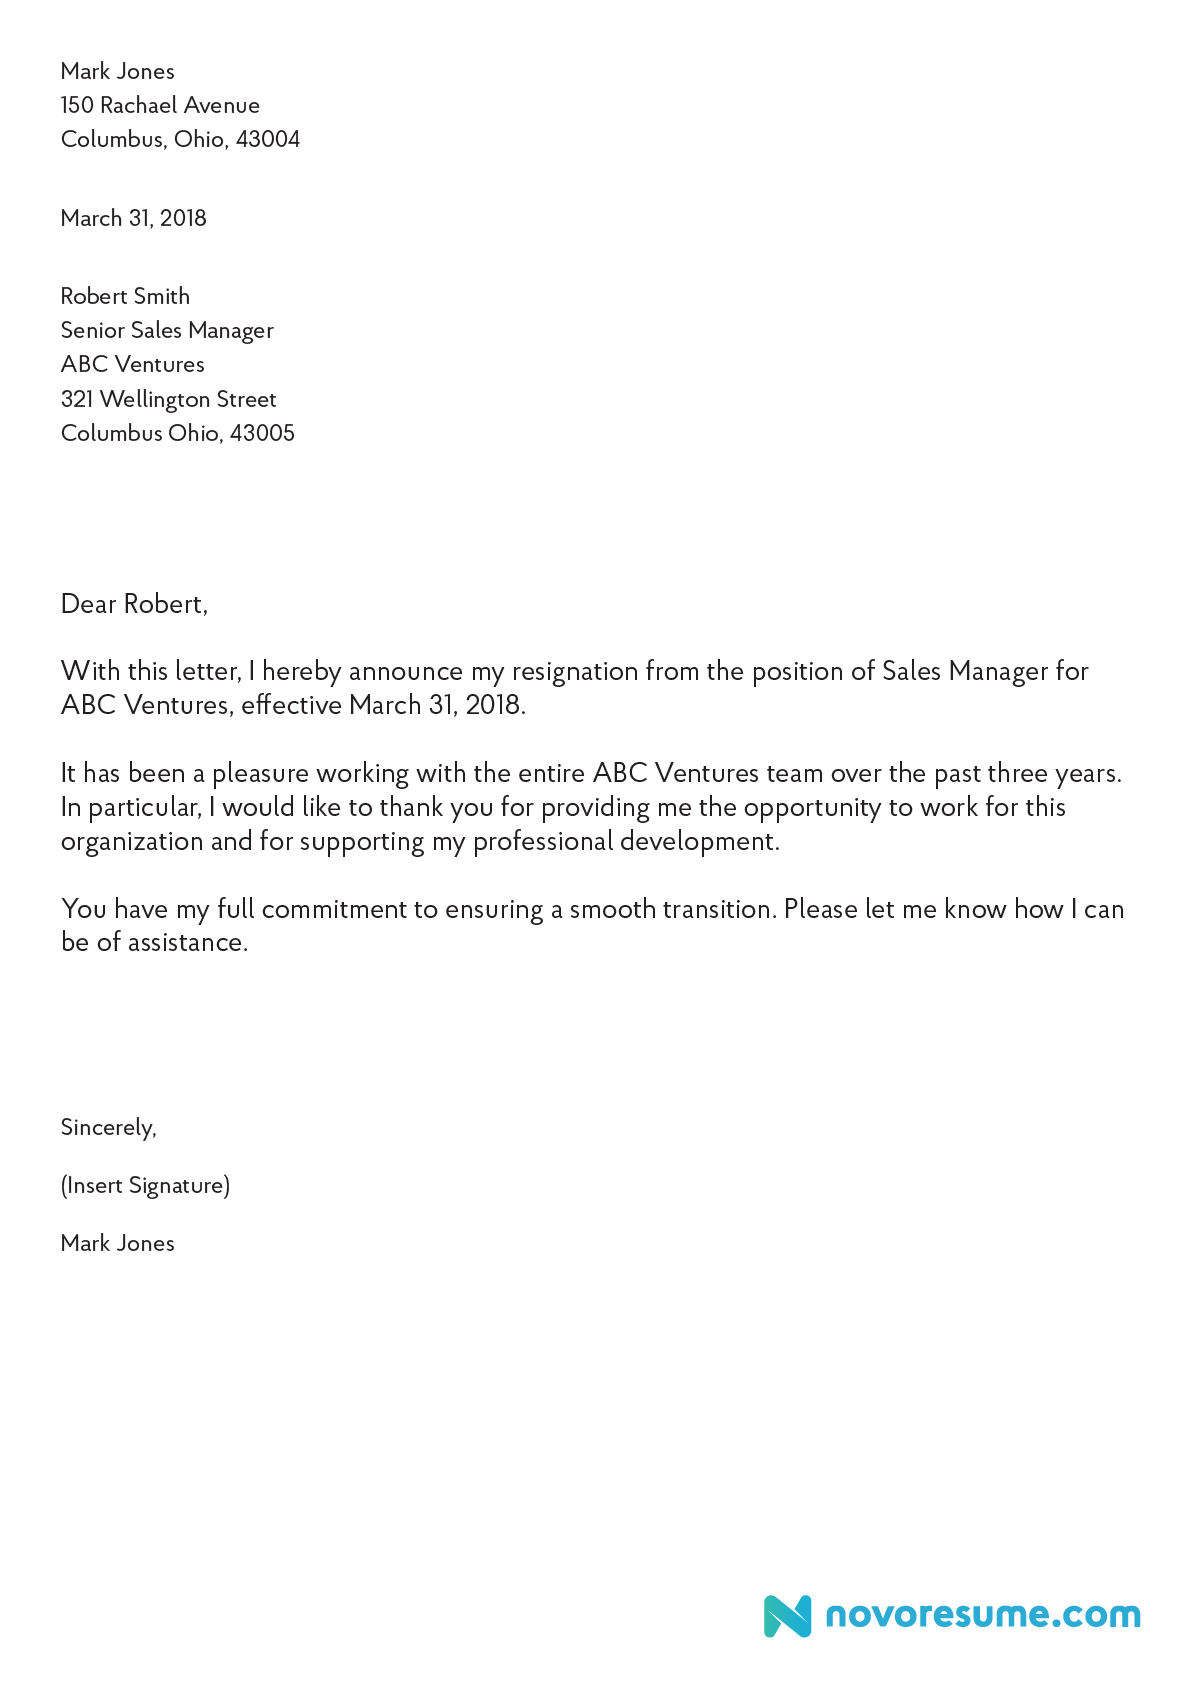 How to Write a Letter of Resignation – 2019 Extensive Guide ...